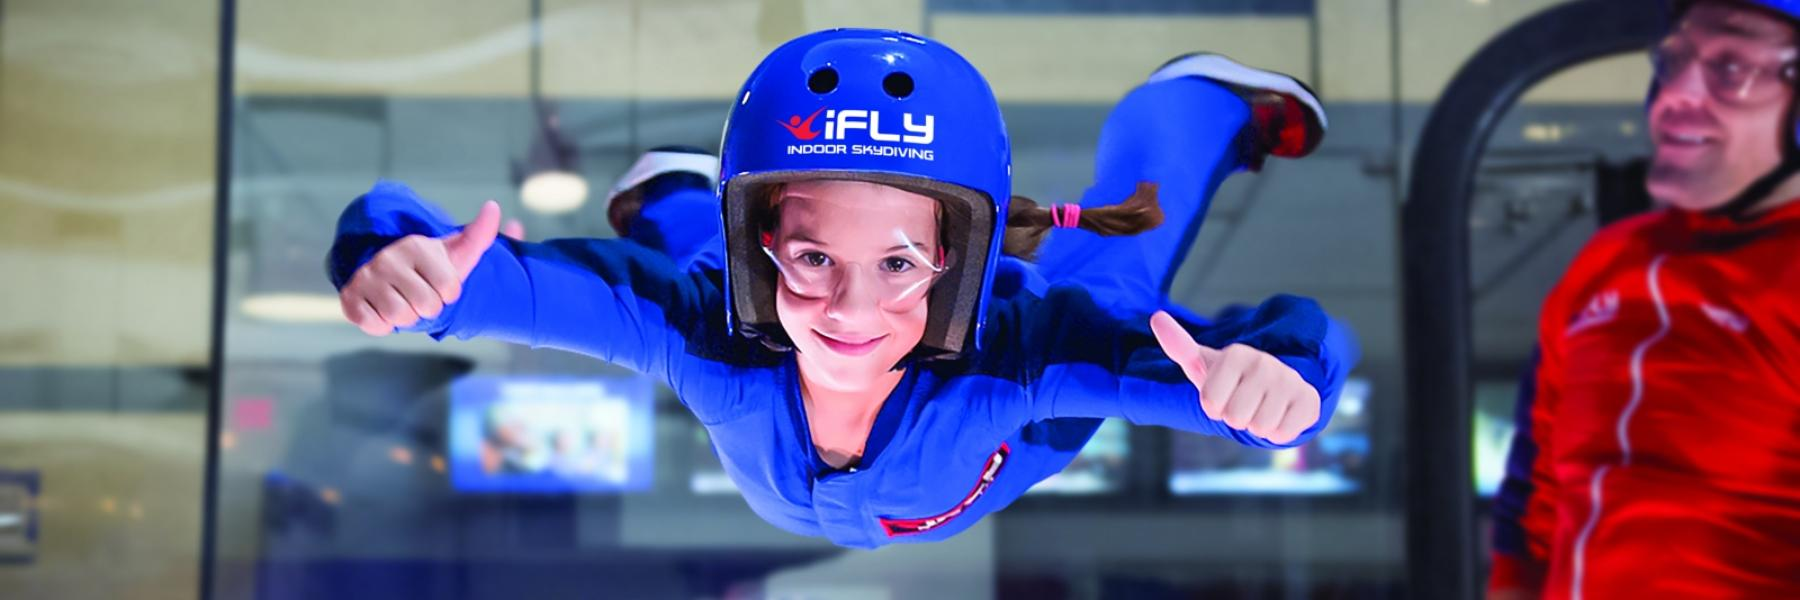 Indoor Skydiving Get Prices For Experiences In Union